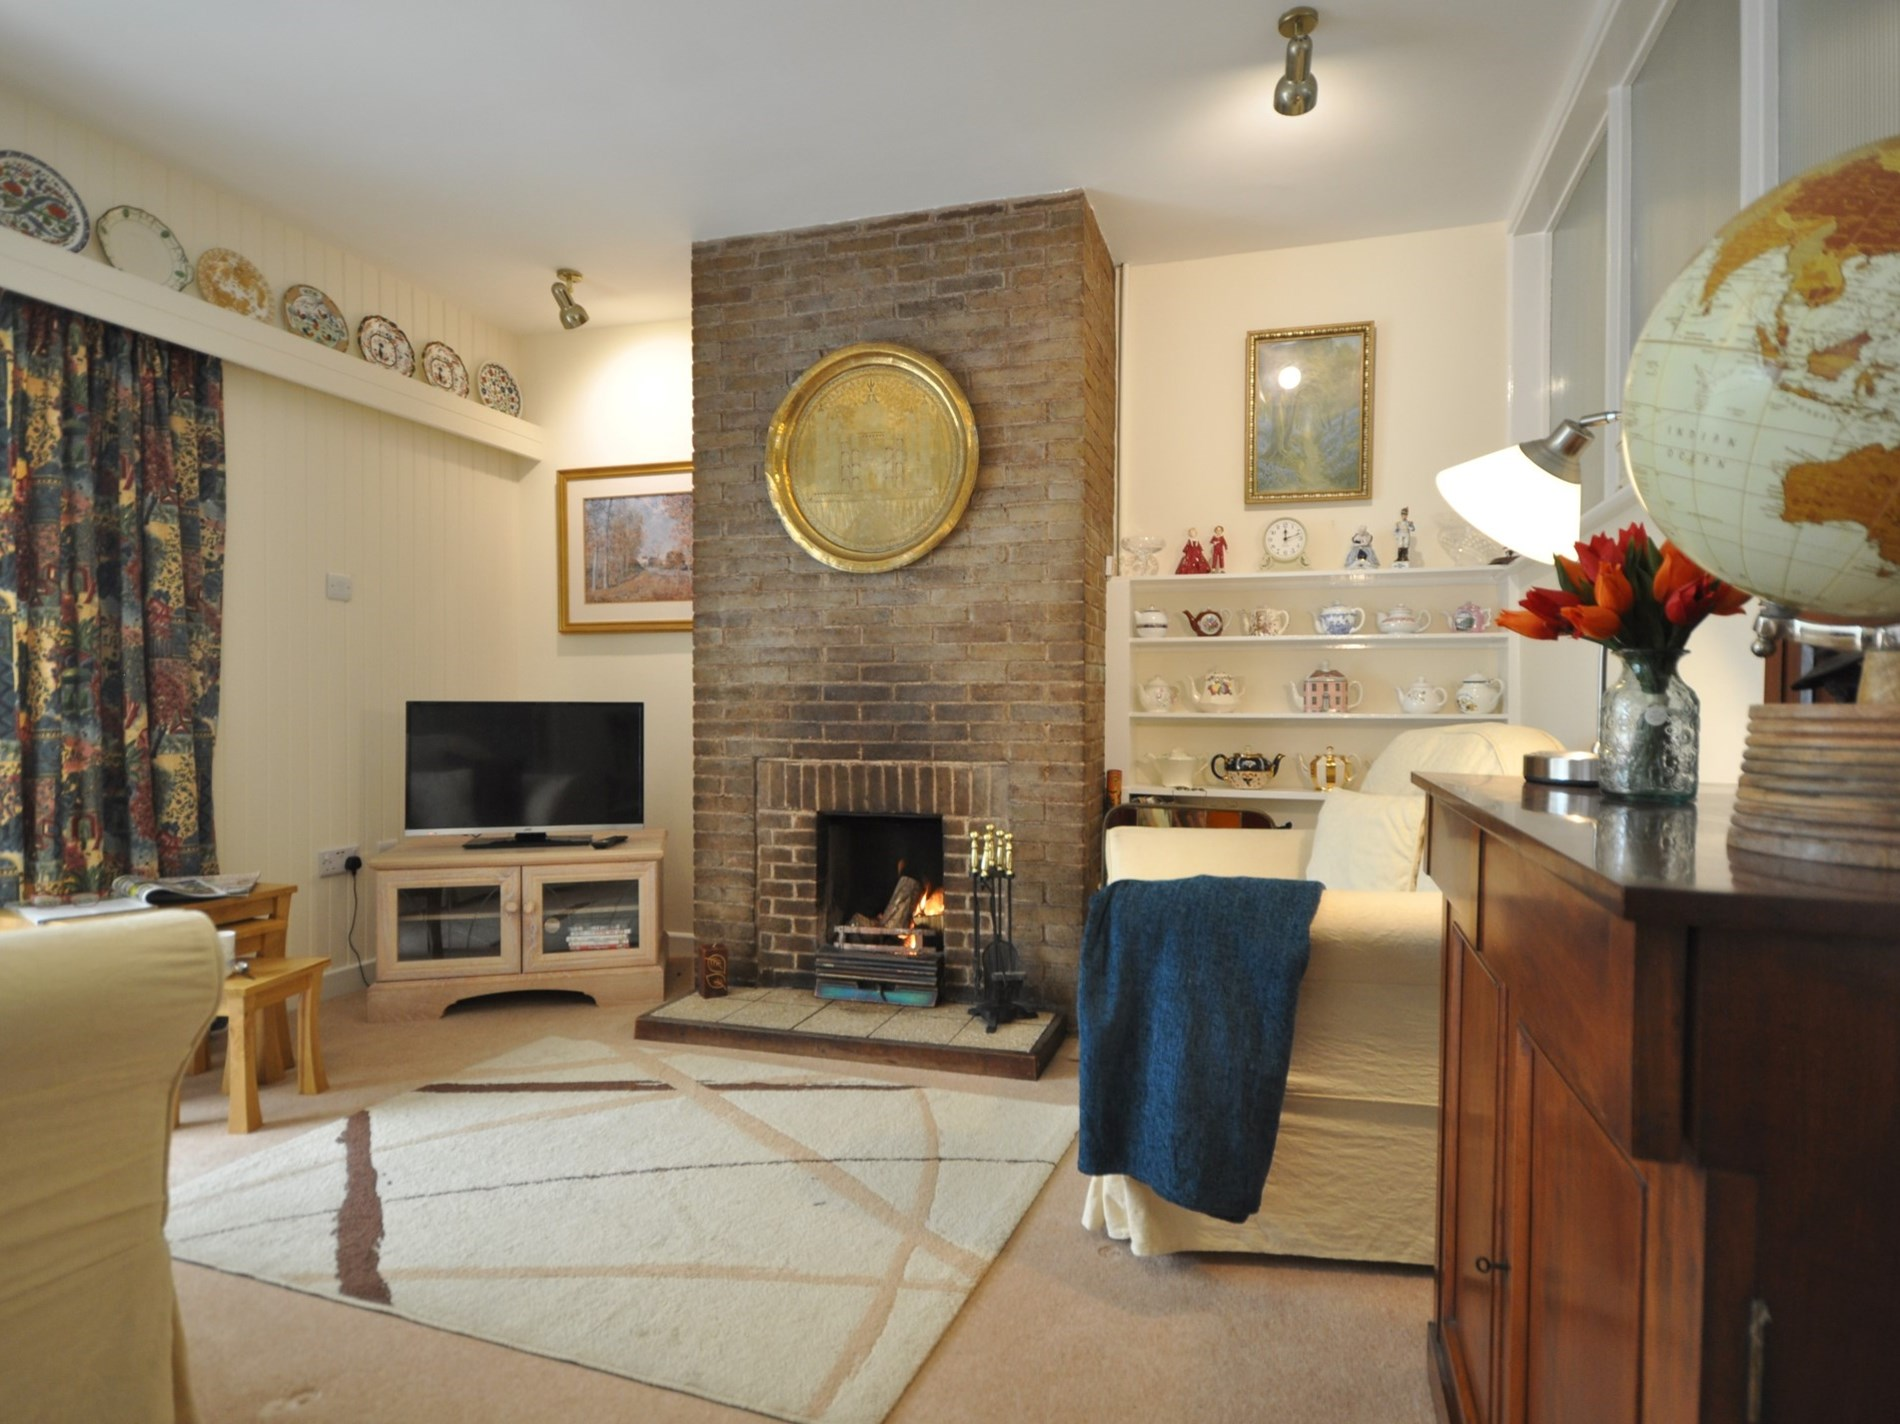 A cosy space to relax in with friends or family